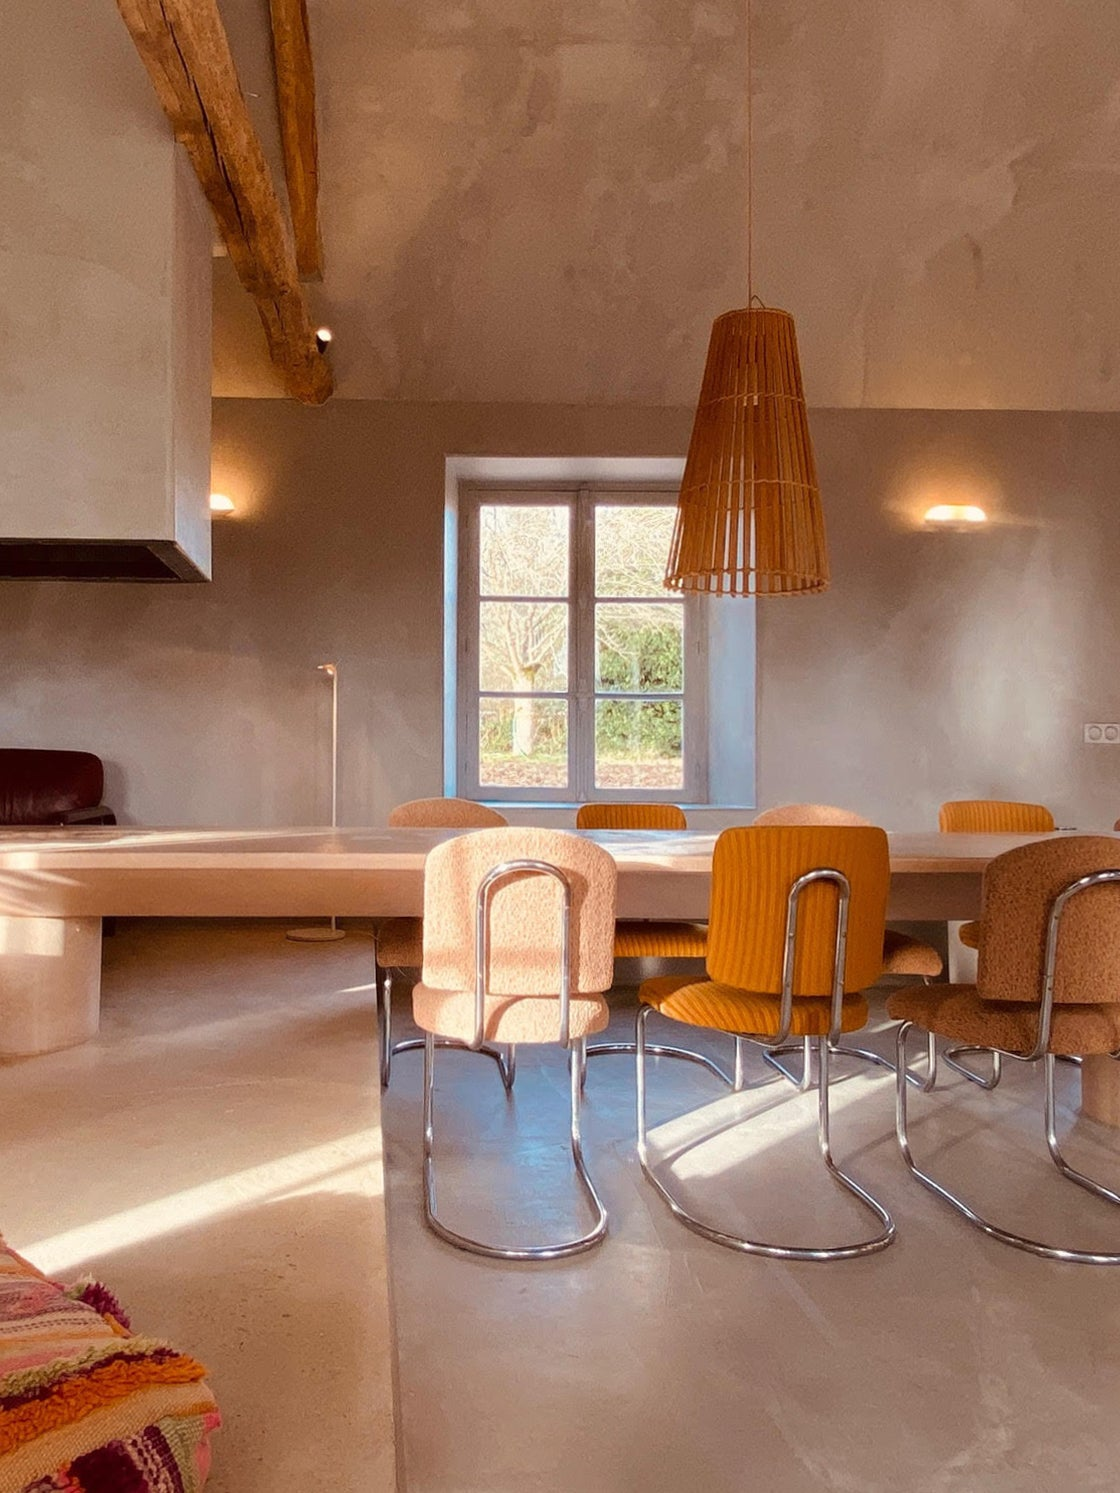 A 16-Foot Pink Concrete Table Connects This French Home's Living and Dining Areas